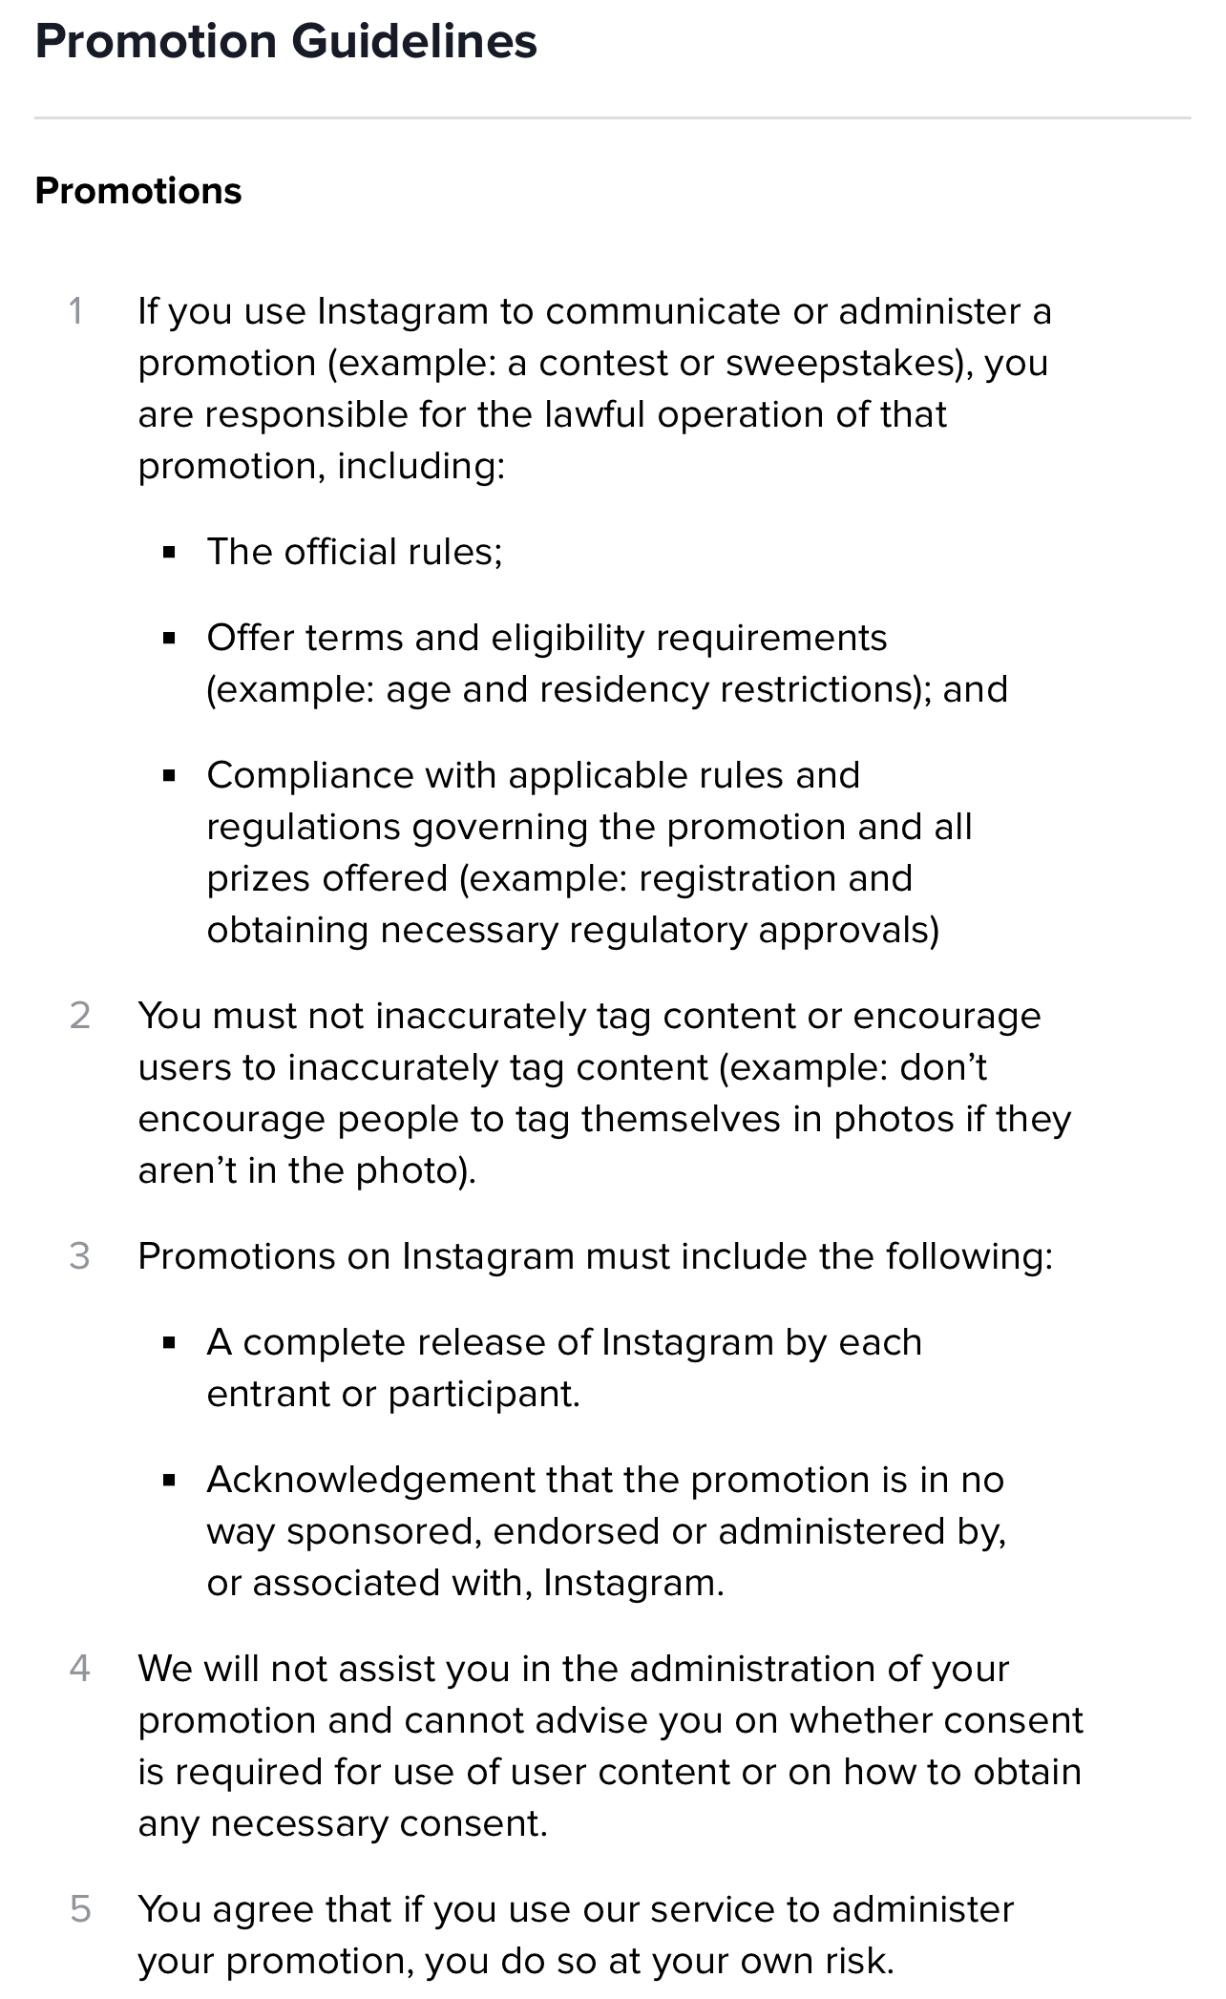 The promotional guidelines from Instagram